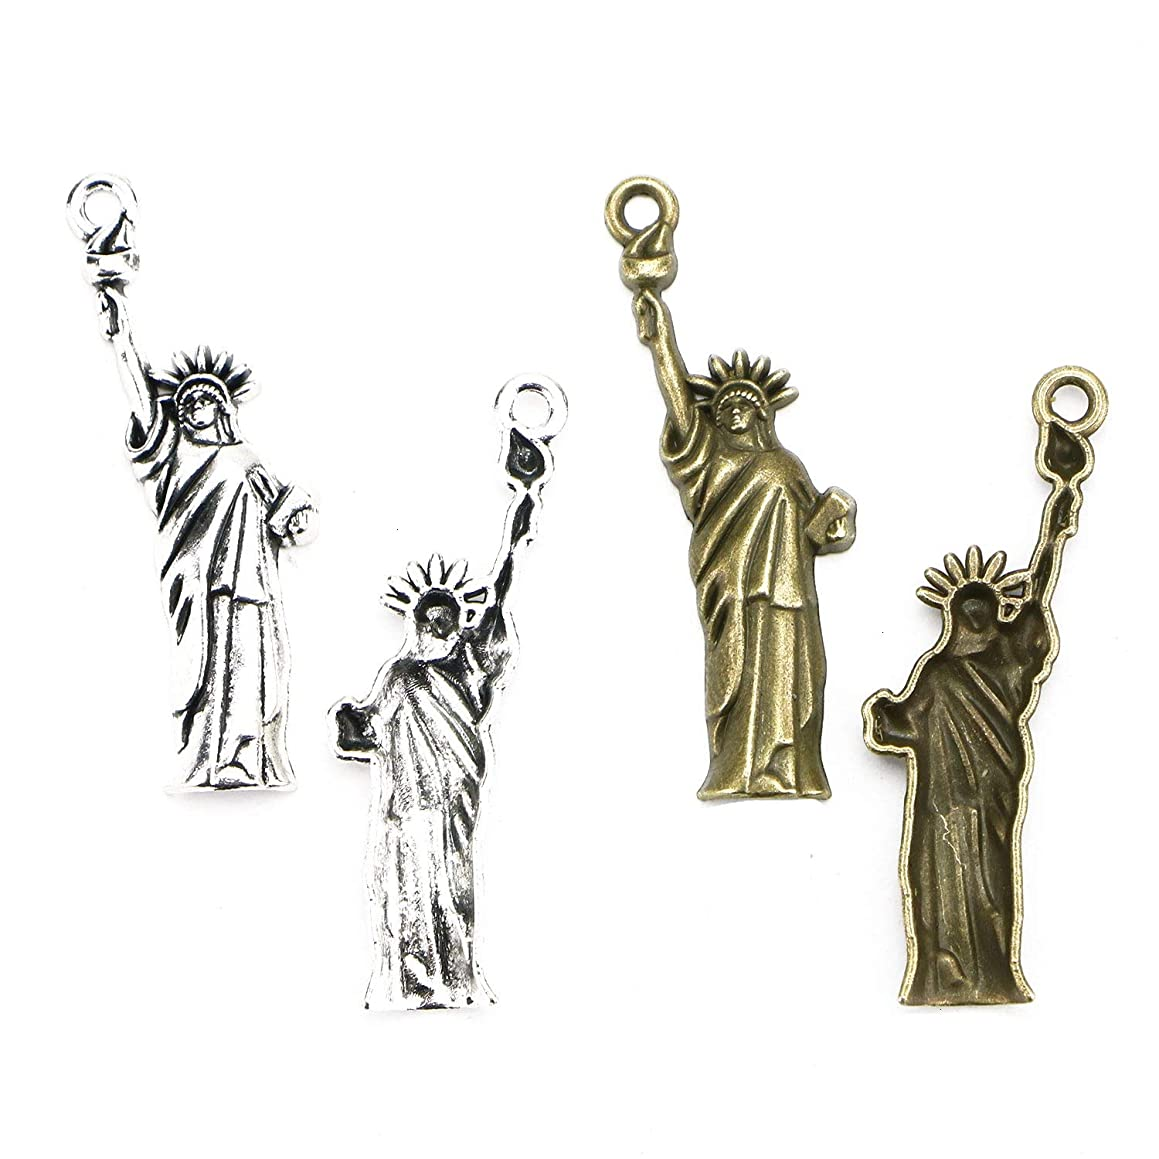 Monrocco 50Pcs 2 Colors Statue of Liberty Charms Pendant,Alloy Charms Pendant for Jewelry Making and Crafting